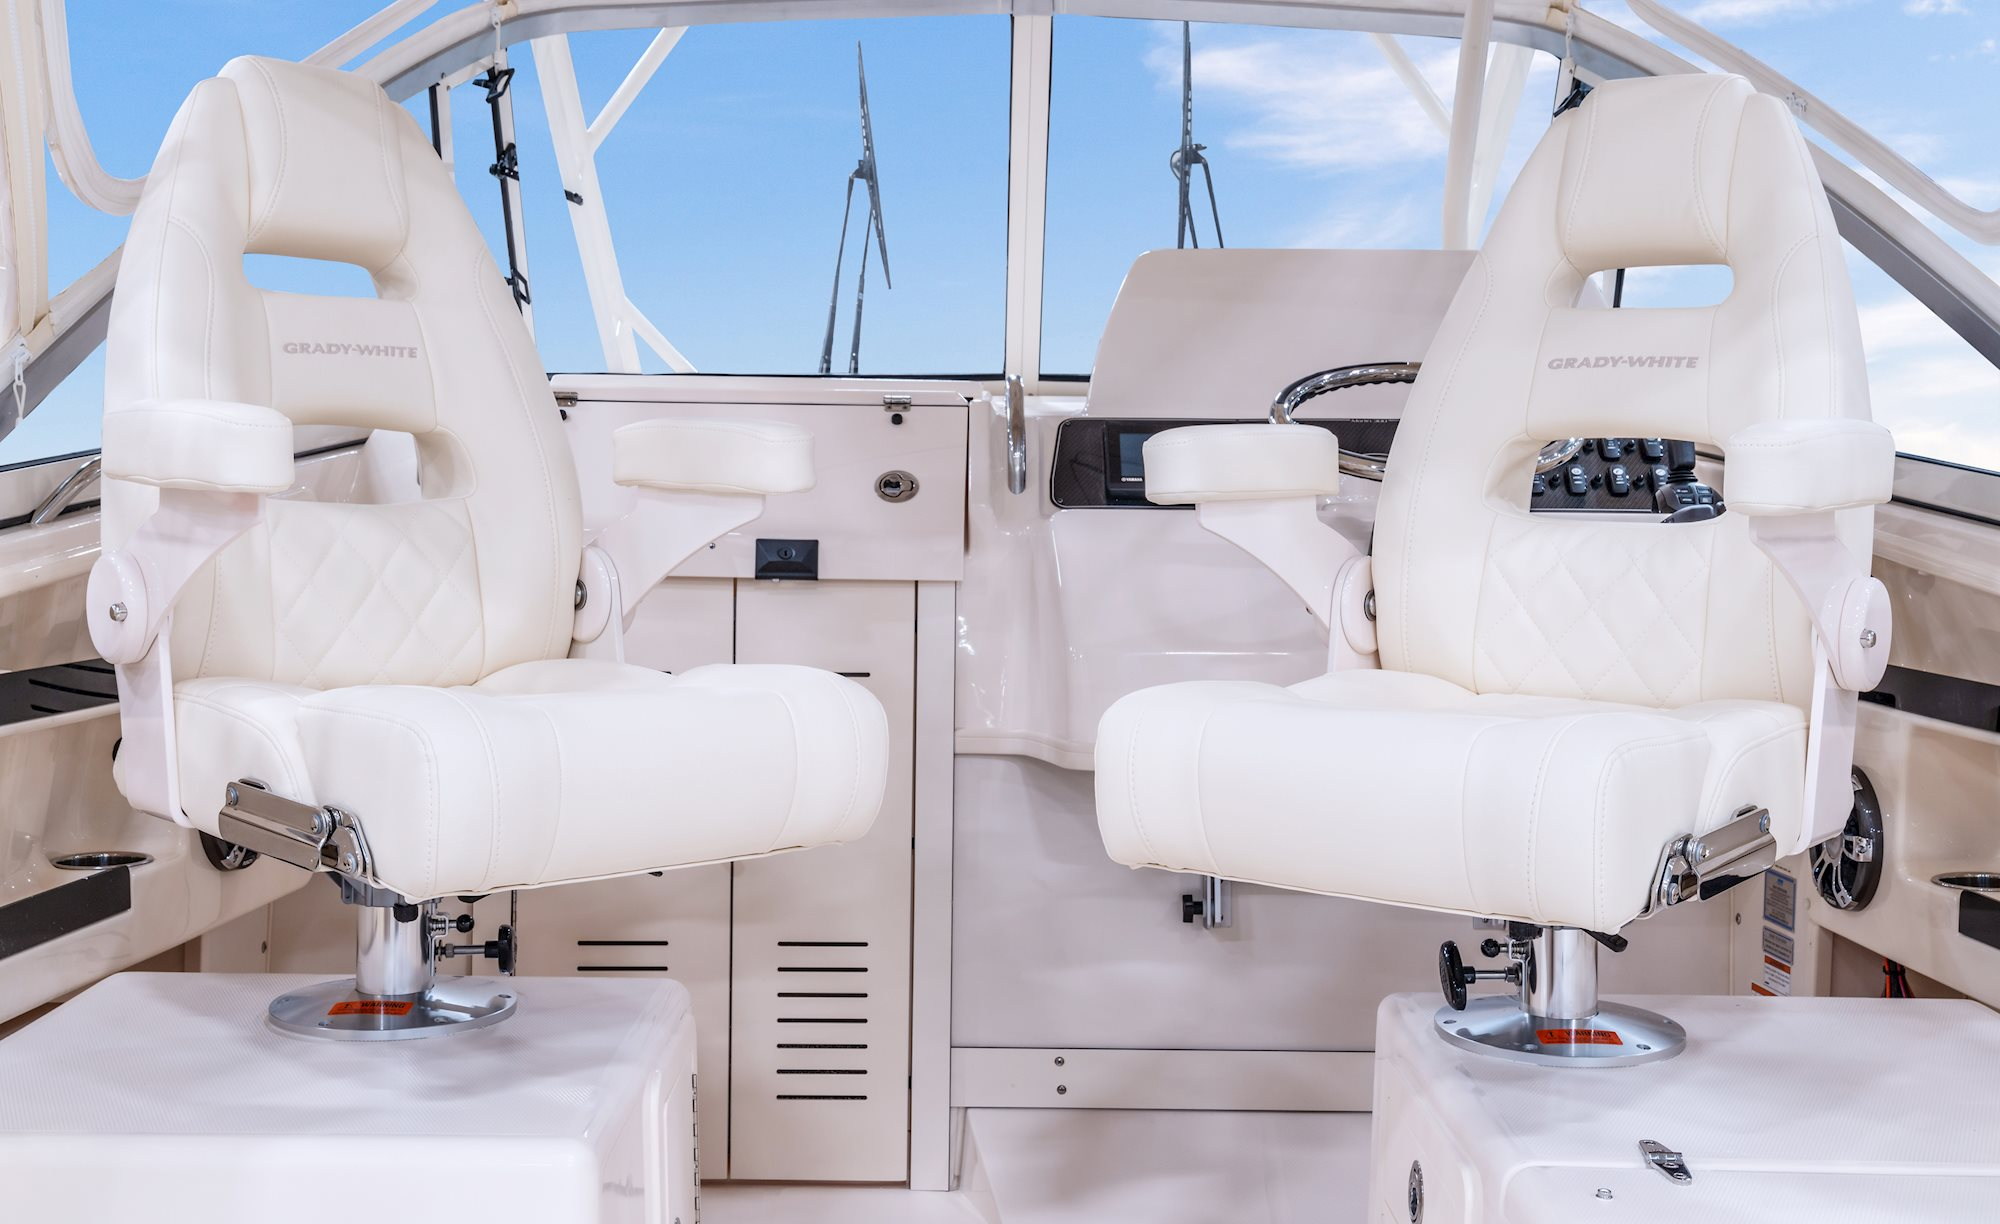 Grady-White Marlin 300 30 foot Walkaround Cabin Boat Command Elite Helm And Companion Chairs 2000